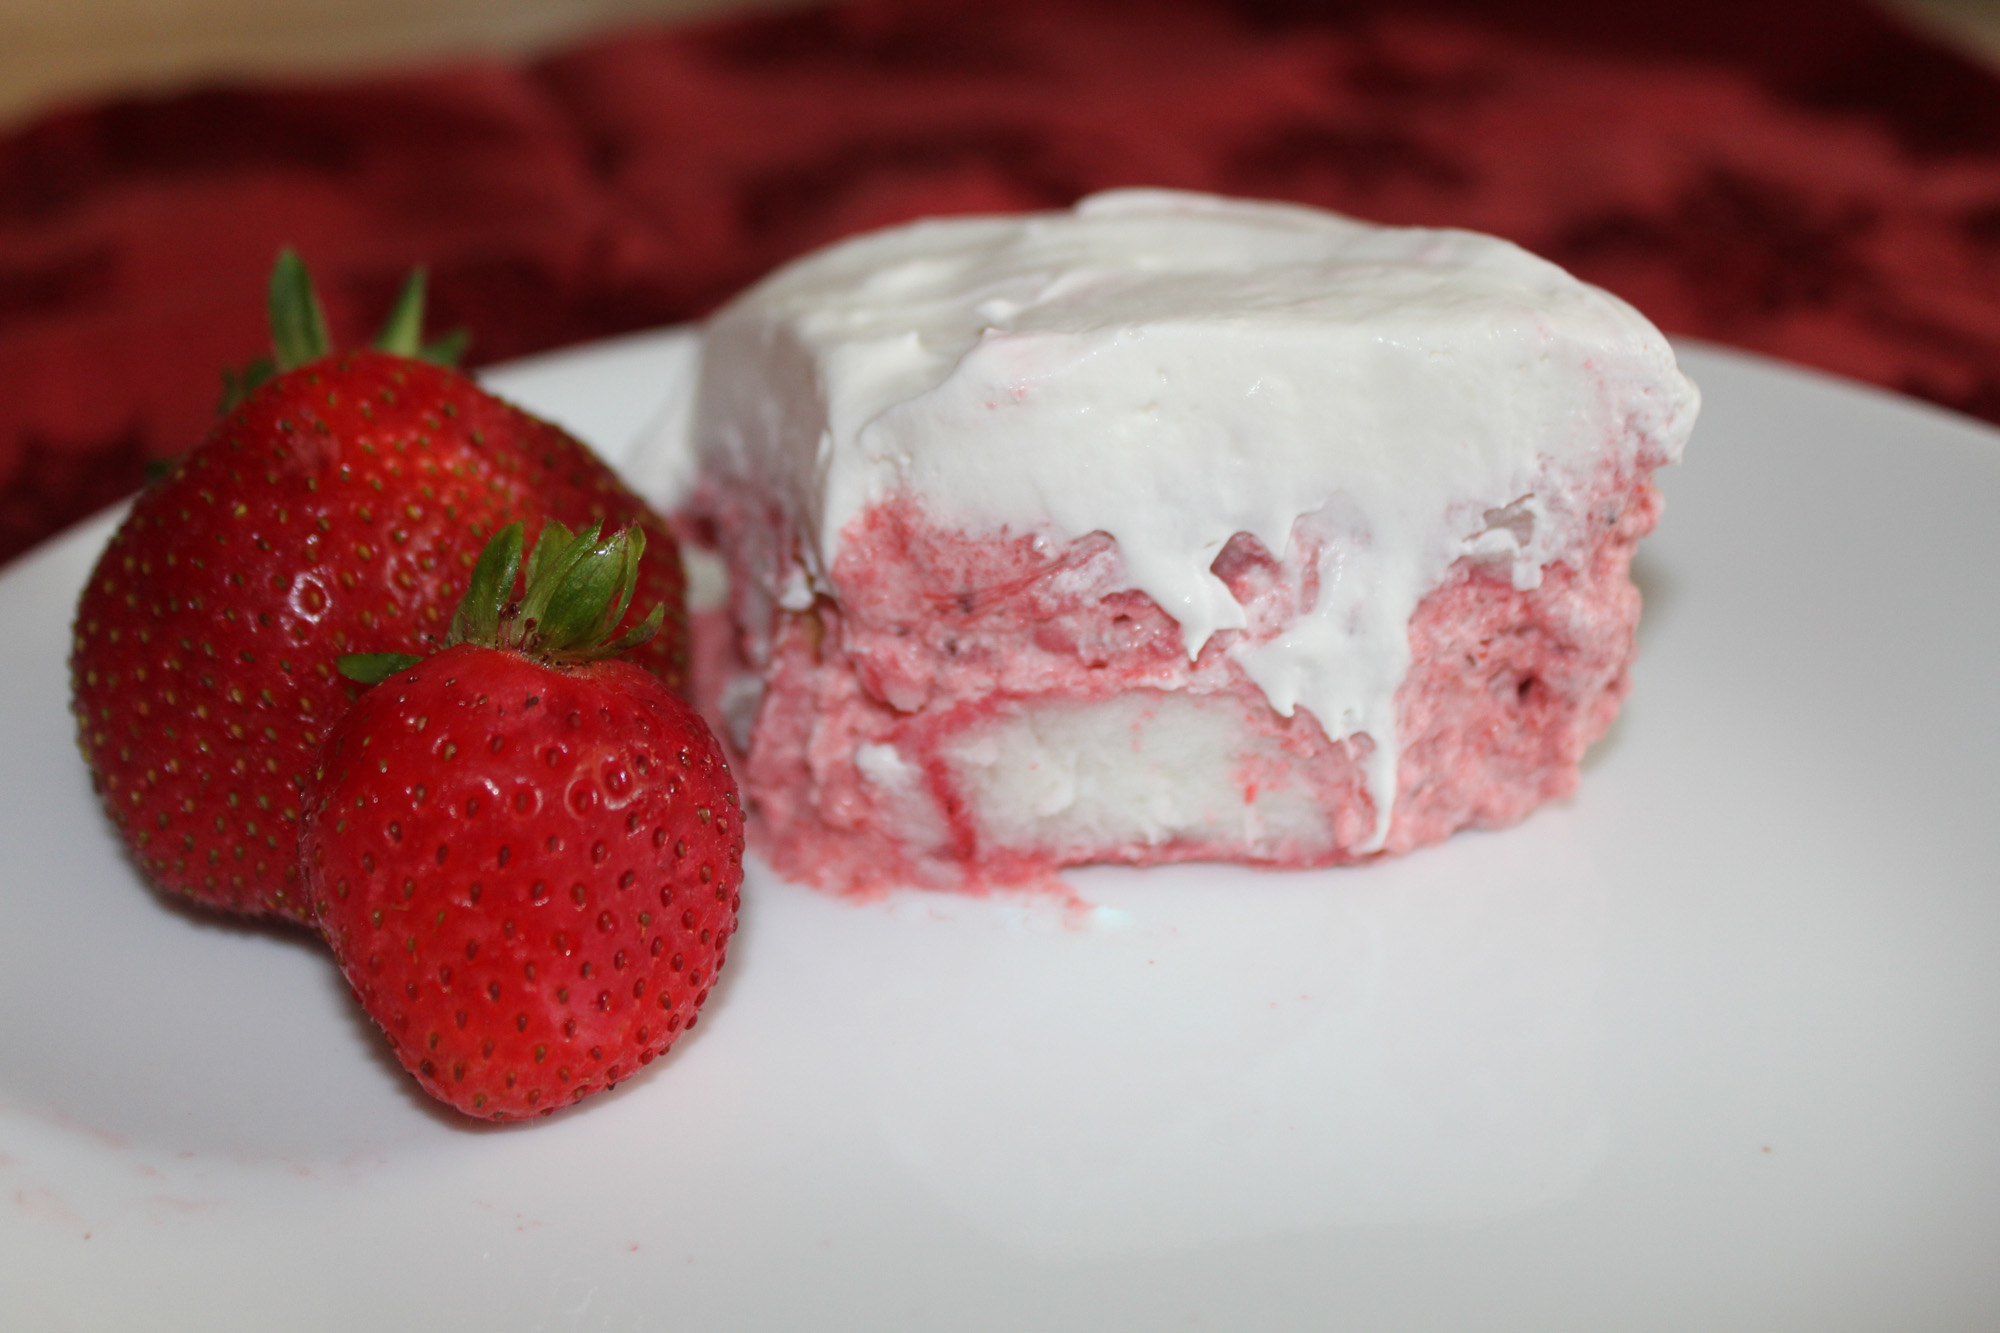 Strawberry angel cake tasty kitchen a happy recipe community forumfinder Image collections